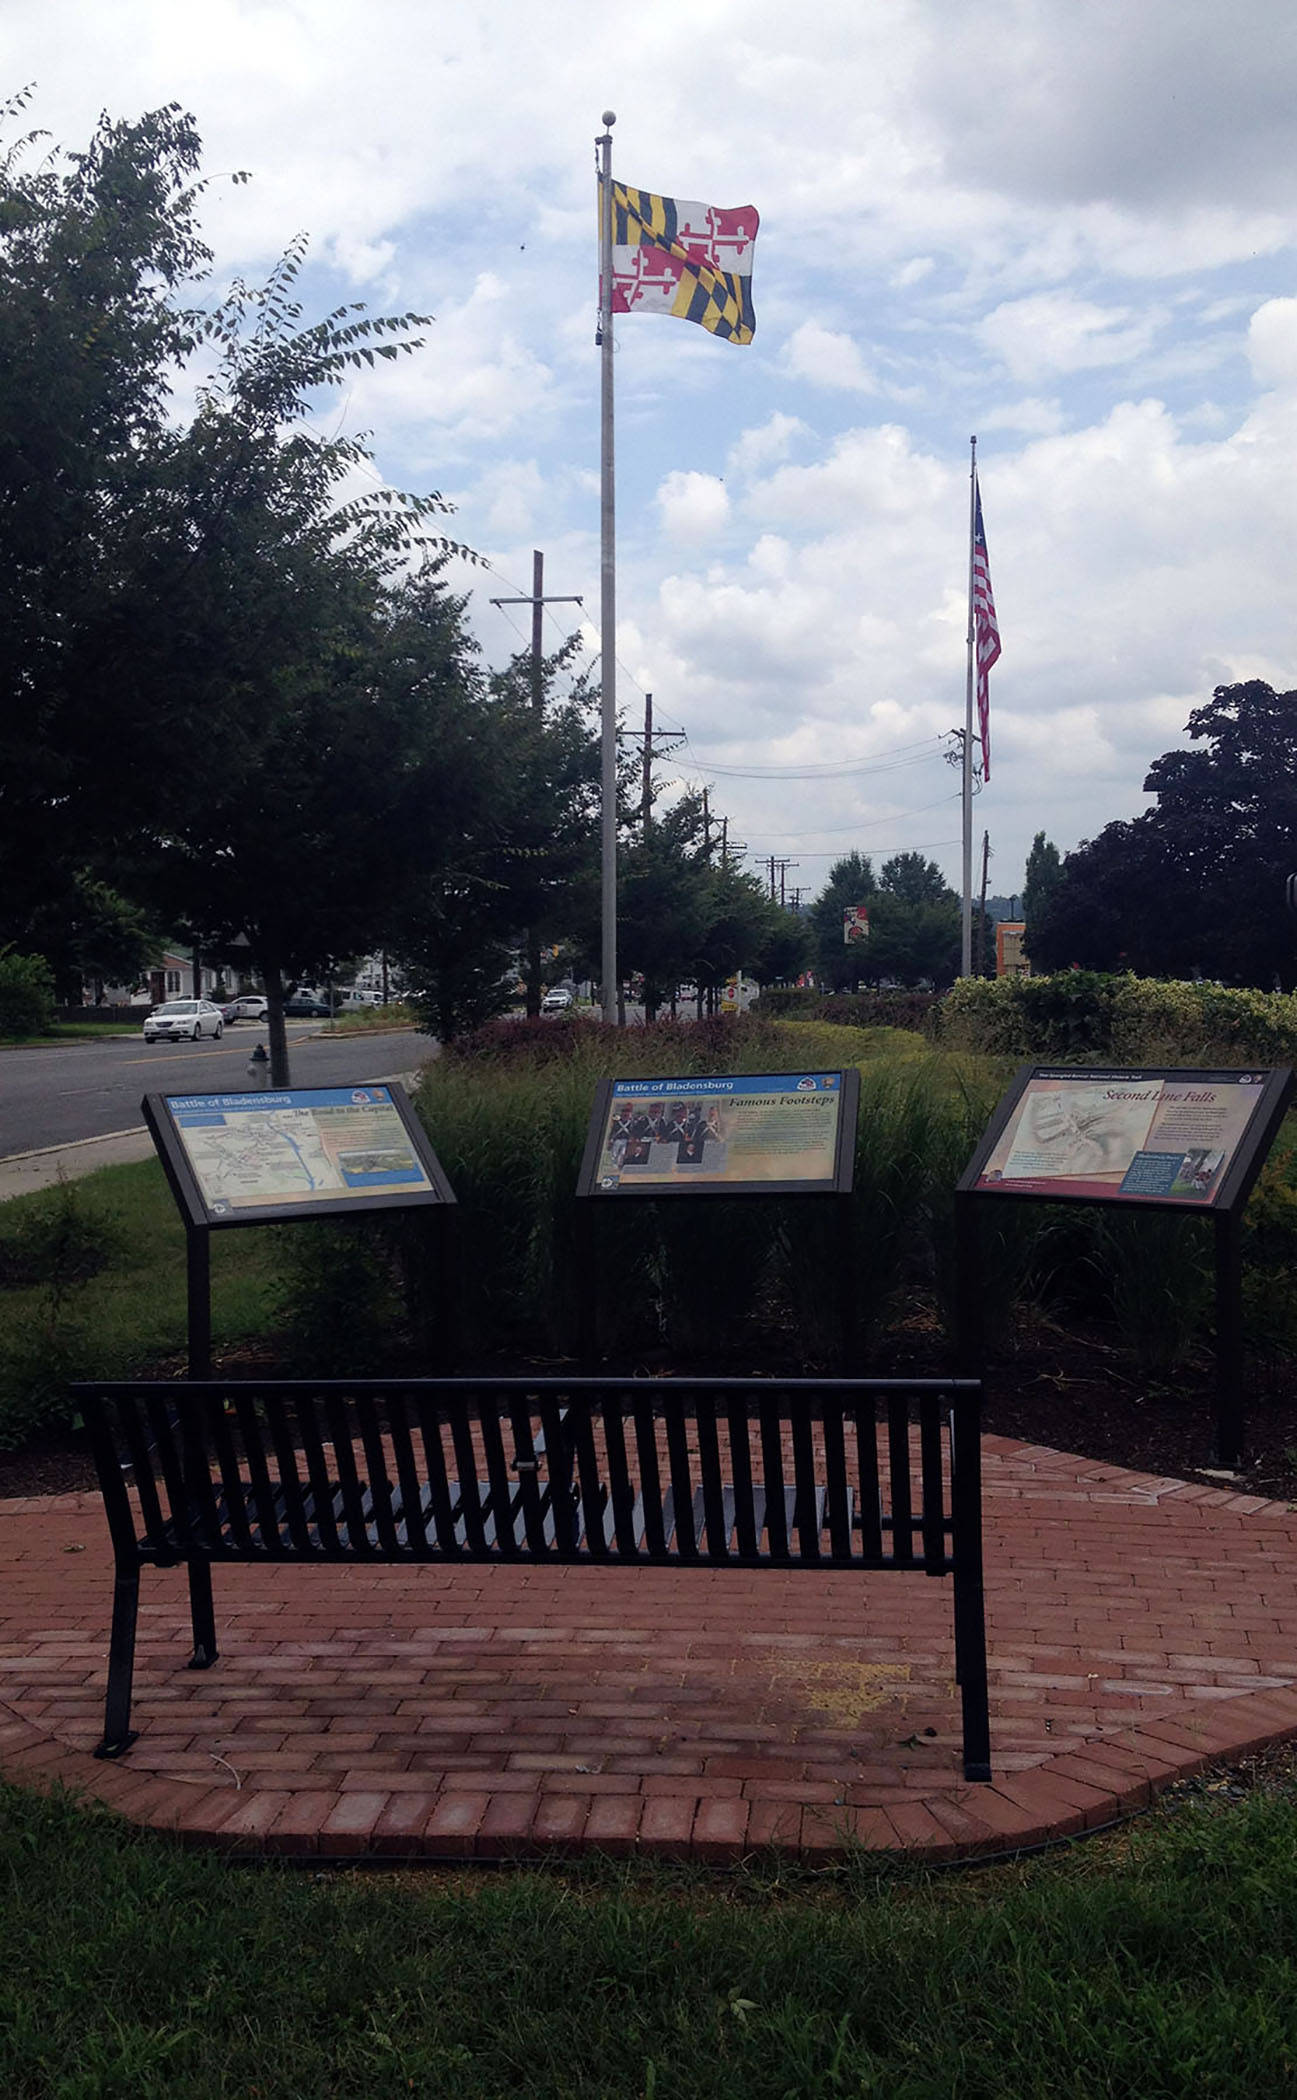 These three waysides were designed for a pocket park to commemorate the War of 1812.